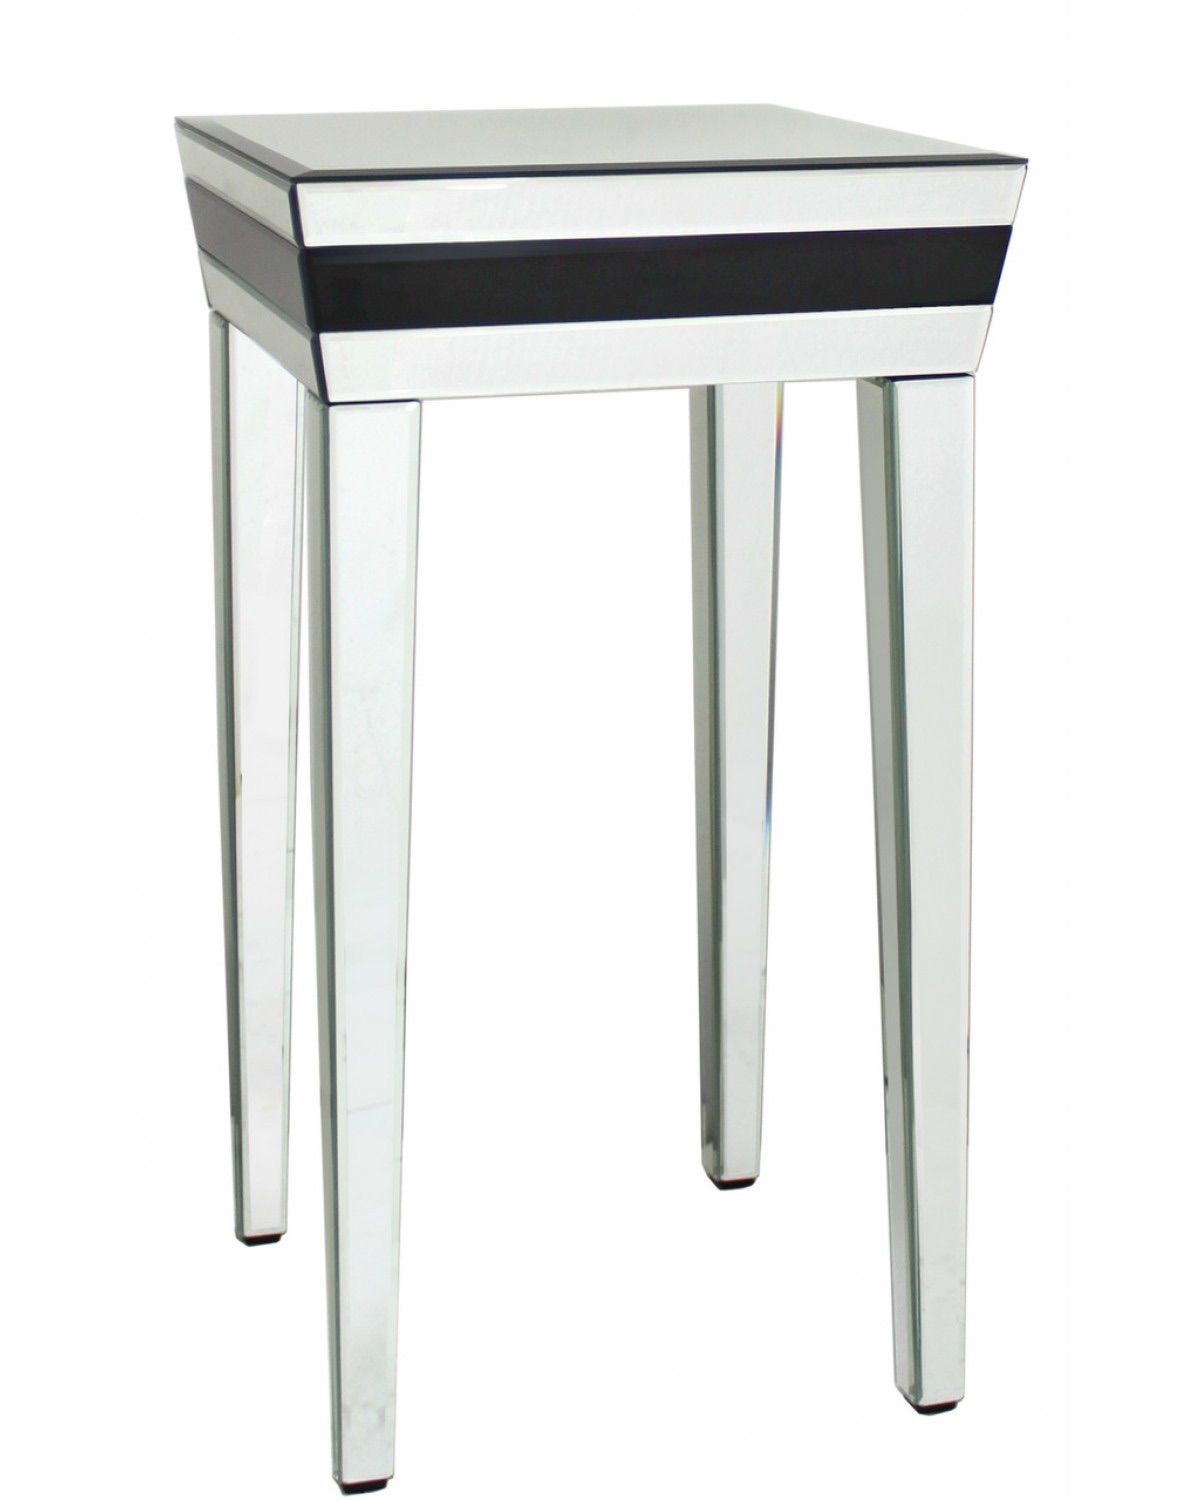 Frameless Glass Coffee Table: Seattle Black Mirrored Manhatten End Table